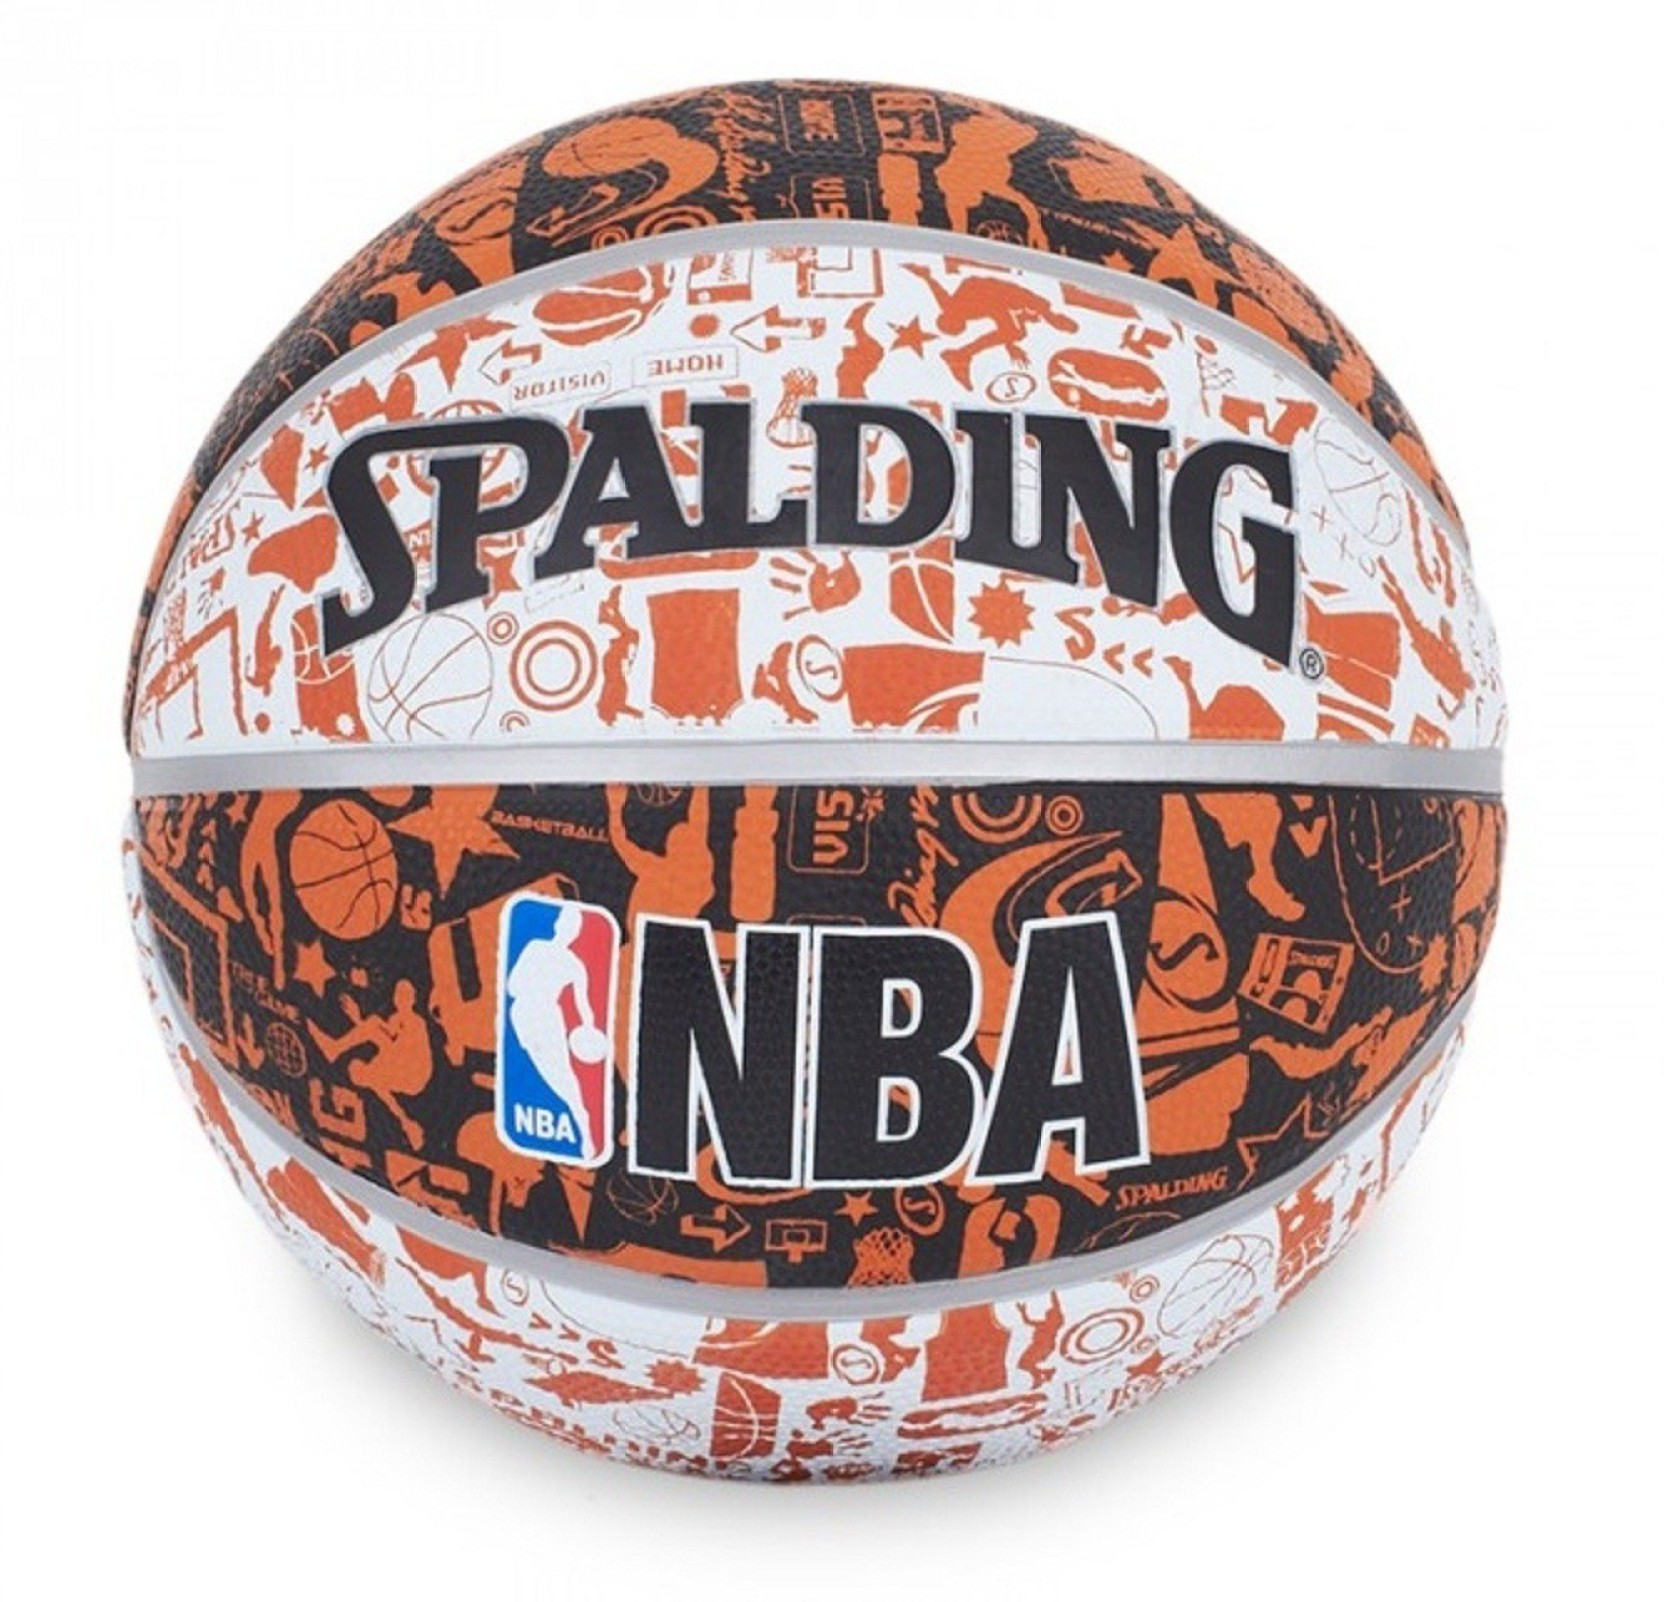 Spalding NBA Graffiti Basketball - Size: 7 - Buy Spalding ...